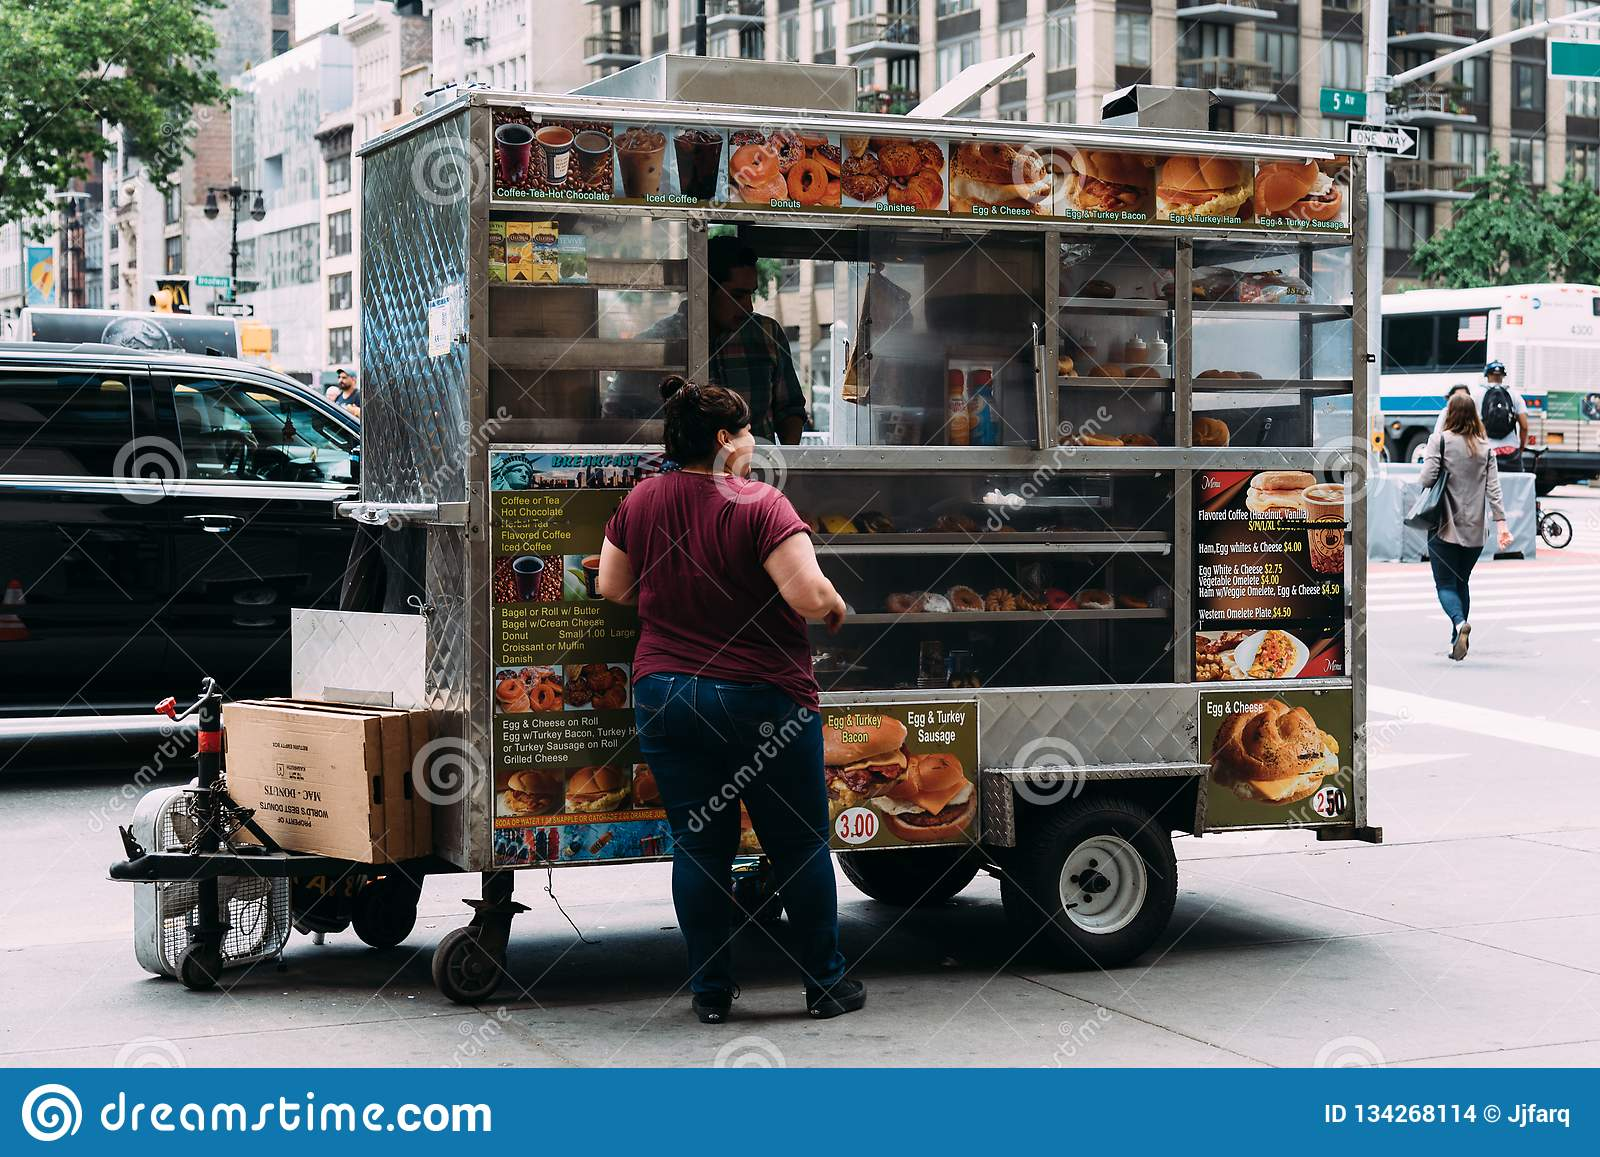 Woman is buying food at food truck in New York